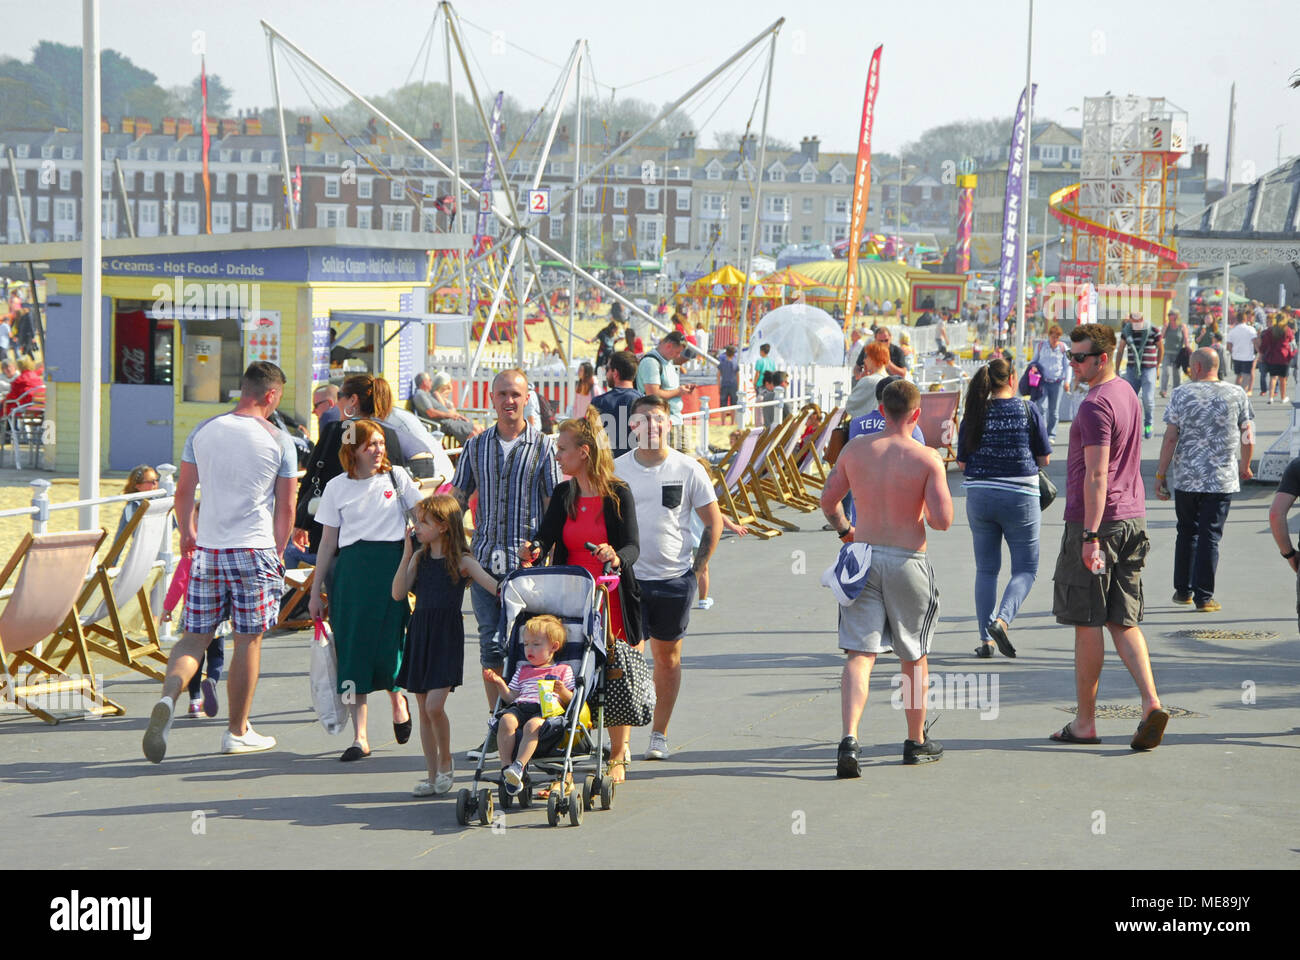 Weymouth, Dorset. 21st April 2018. Families flock to sunny Weymouth on  another hot and summer-like day for the Dorset resort Credit: stuart fretwell/Alamy Live News Stock Photo